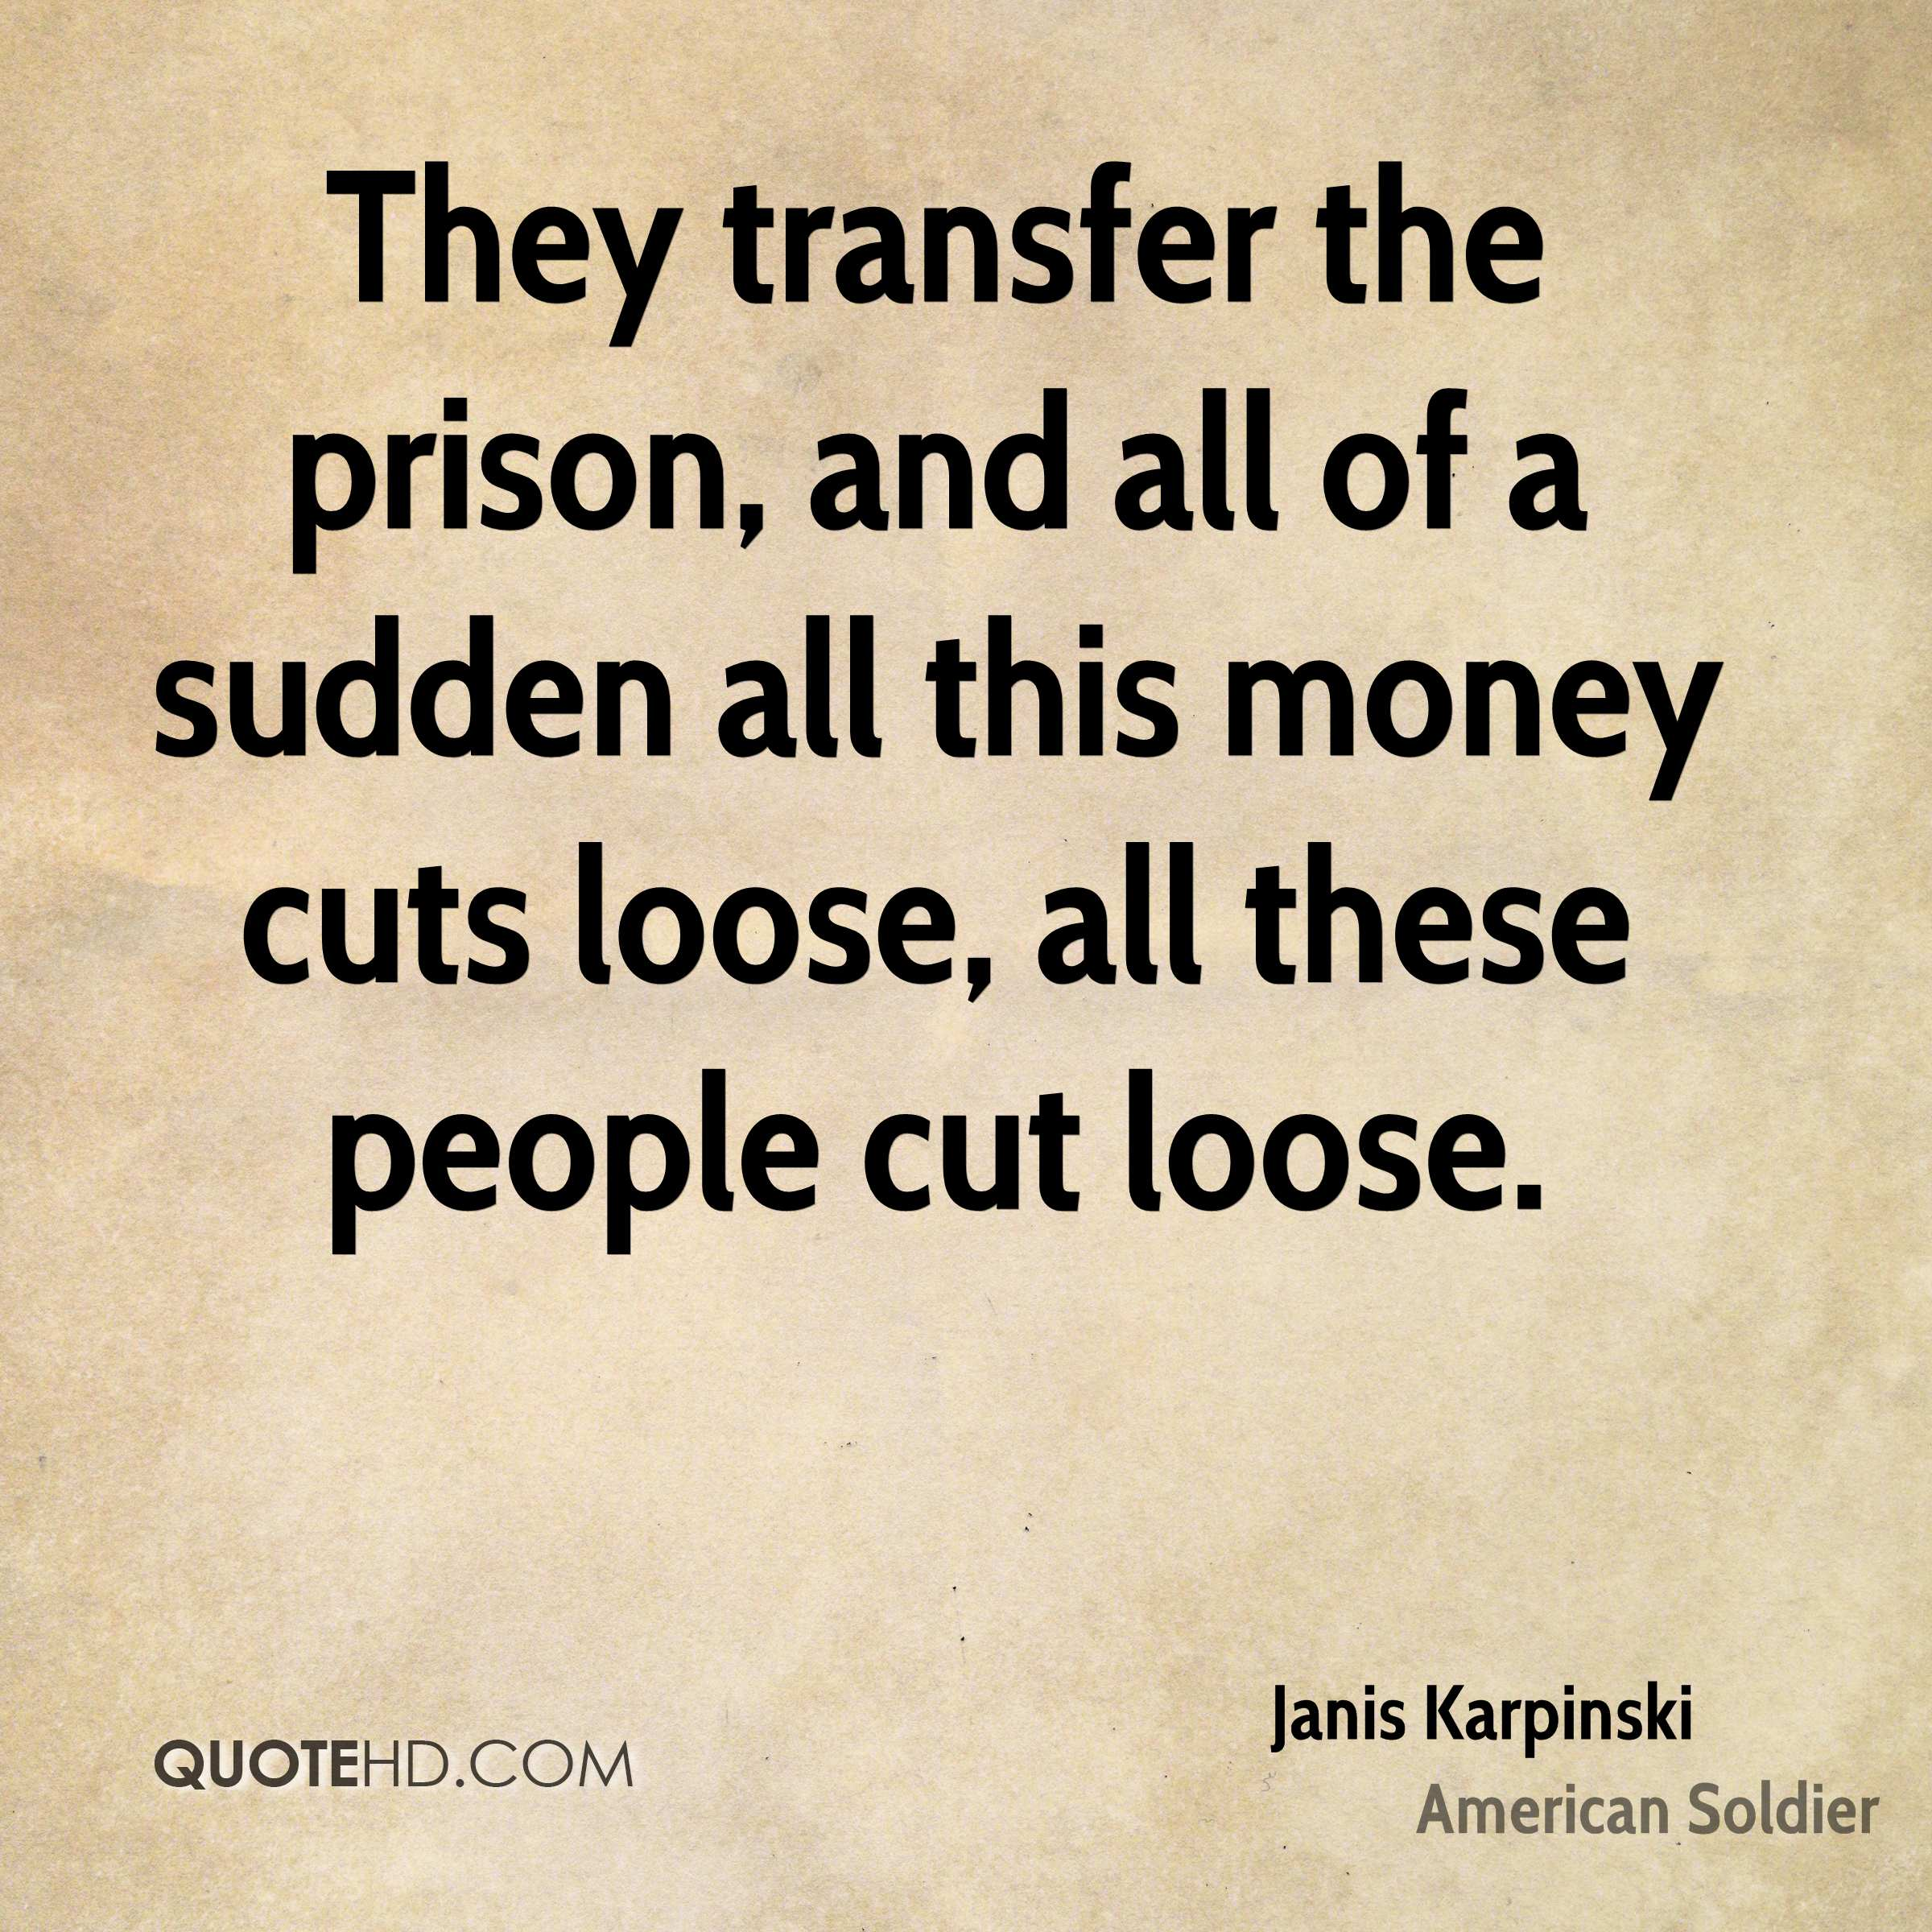 They transfer the prison, and all of a sudden all this money cuts loose, all these people cut loose.